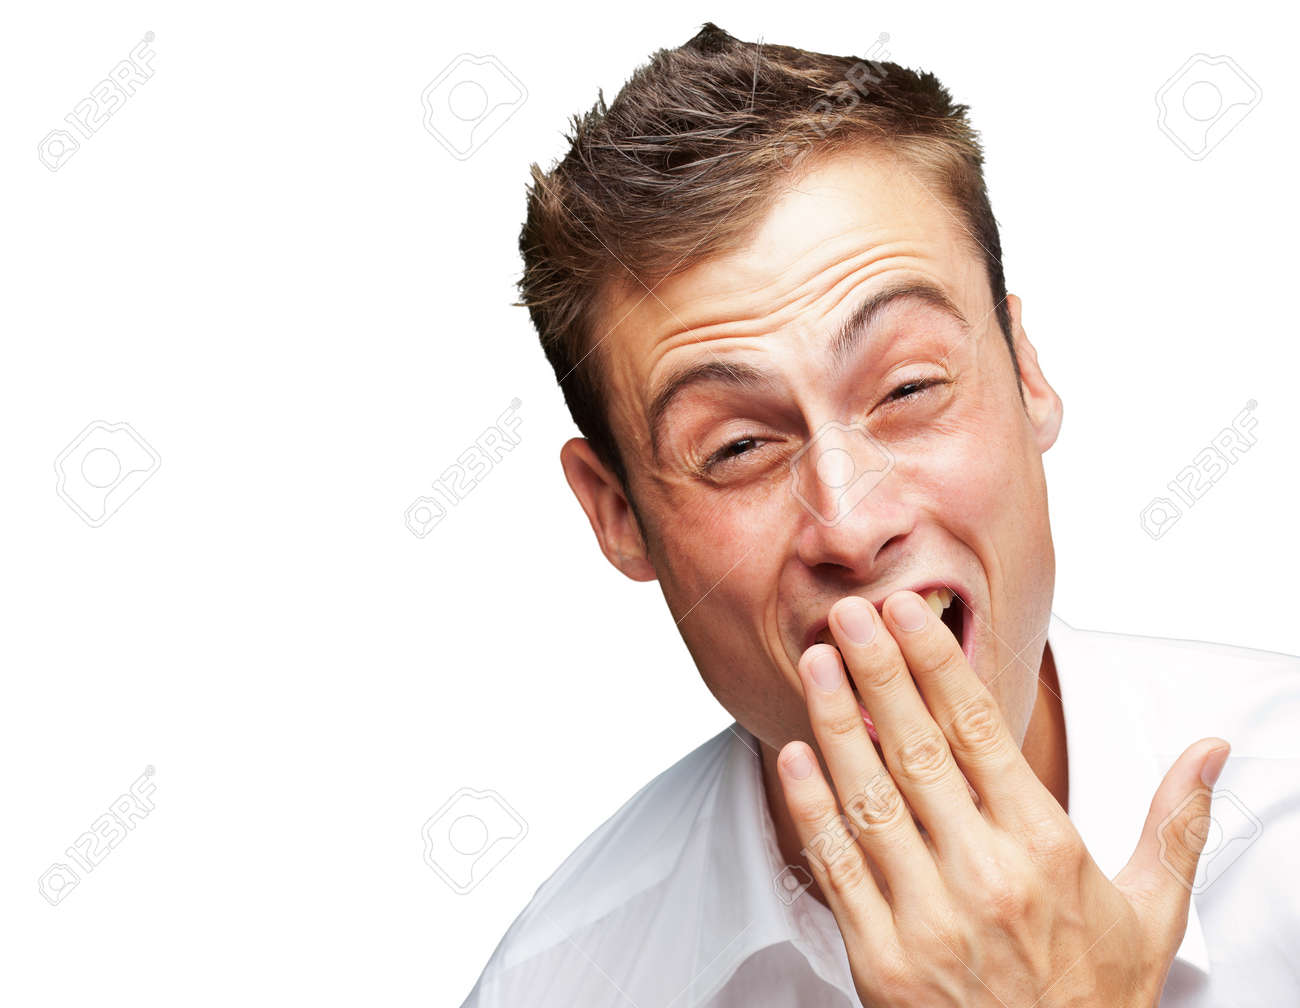 Portrait Of Young Man Covering His Mouth With Hand On White Background Stock Photo - 15853629